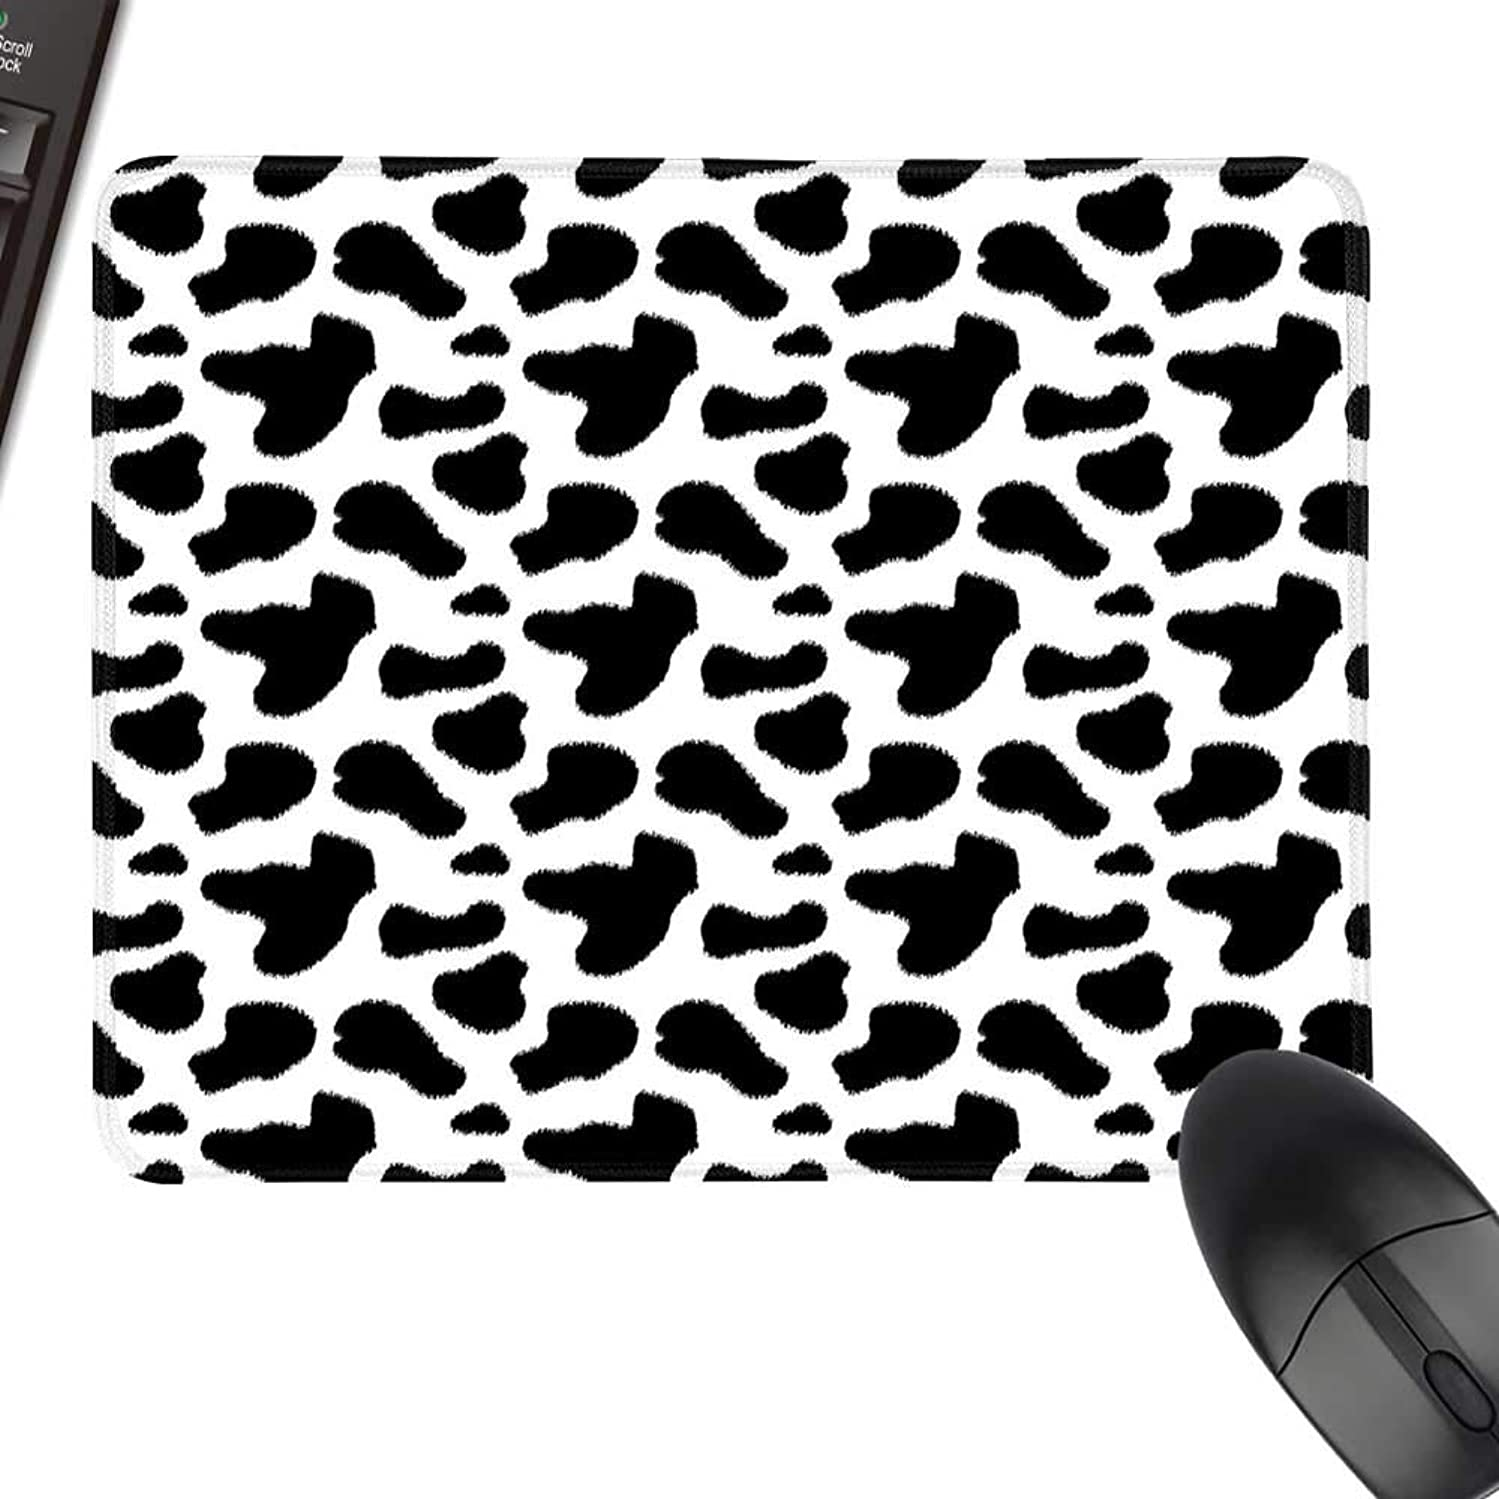 Cow Print Hot Selling Extra Large Mouse Pad Cow Hide Pattern with Black Spots Farm Life with Cattle Camouflage Animal Skin Keyboard Mouse Pad 11.8